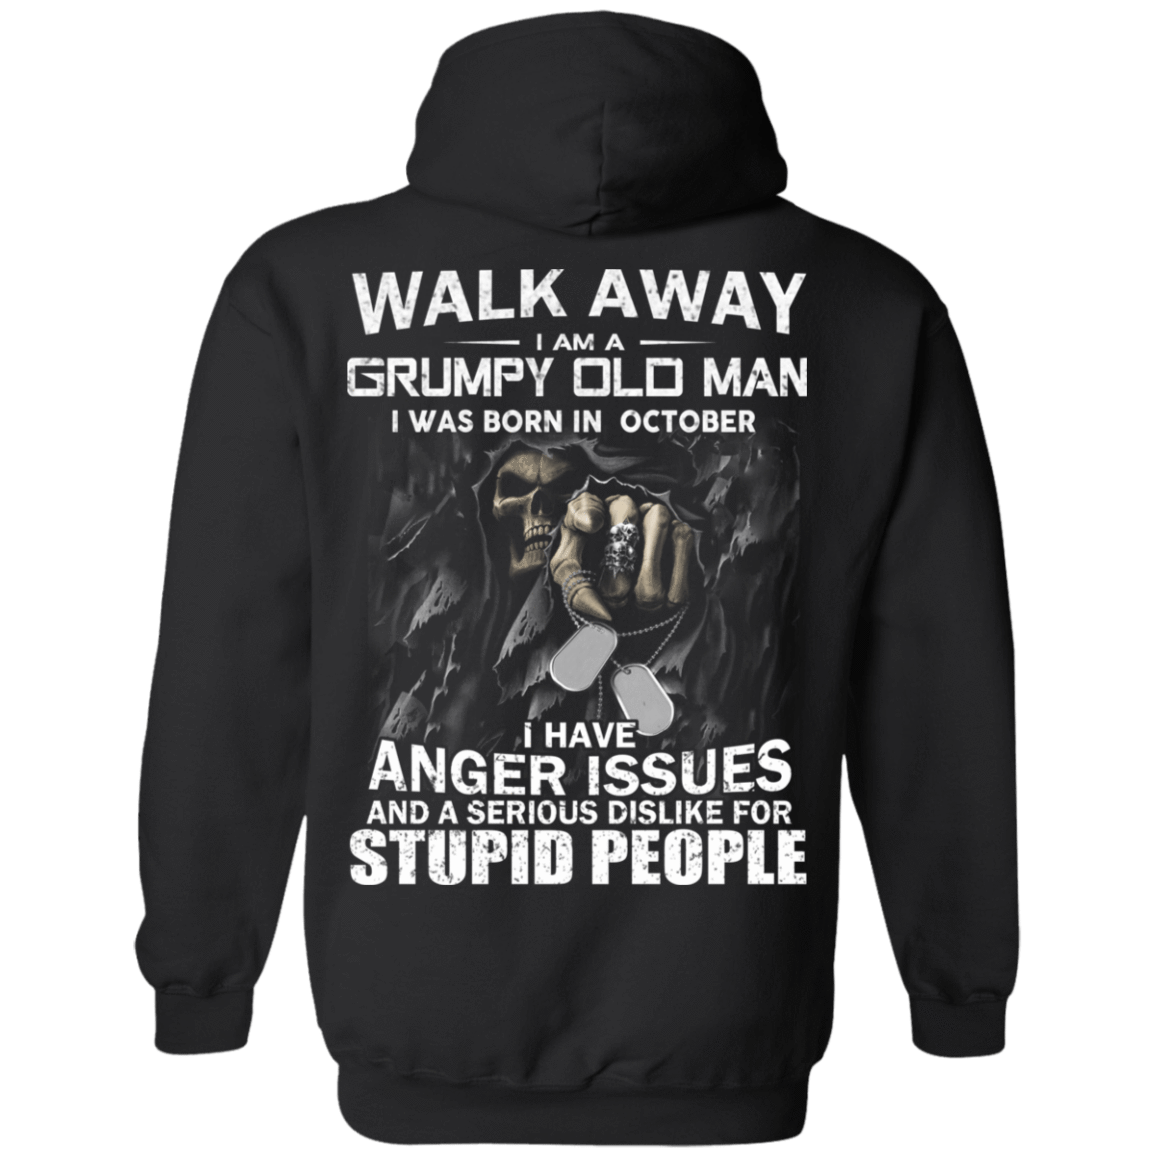 I Am A Grumpy Old Man I Was Born In October T-Shirts, Hoodies, Tank 541-4740-80564225-23087 - Tee Ript